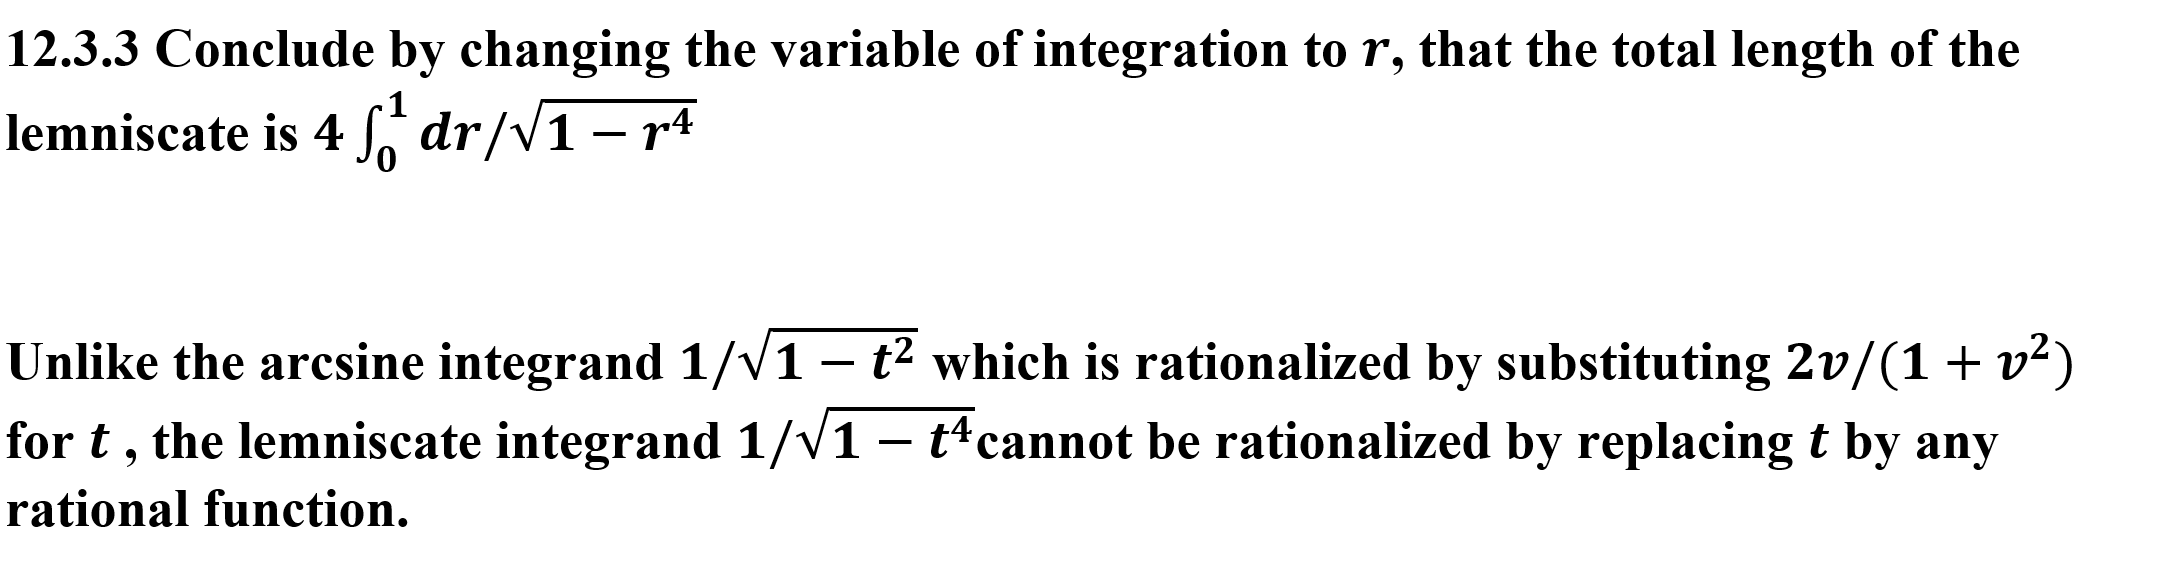 12.3.3 Conclude by changing the variable of integration to r, that the total length of the lemniscate is 4dr/V1 - r4 Unlike the arcsine integrand 1/V1 - t2 which is rationalized by substituting 2v/(1+ v2) for t, the lemniscate integrand 1/V1 - t4cannot be rationalized by replacing t by any rational function.